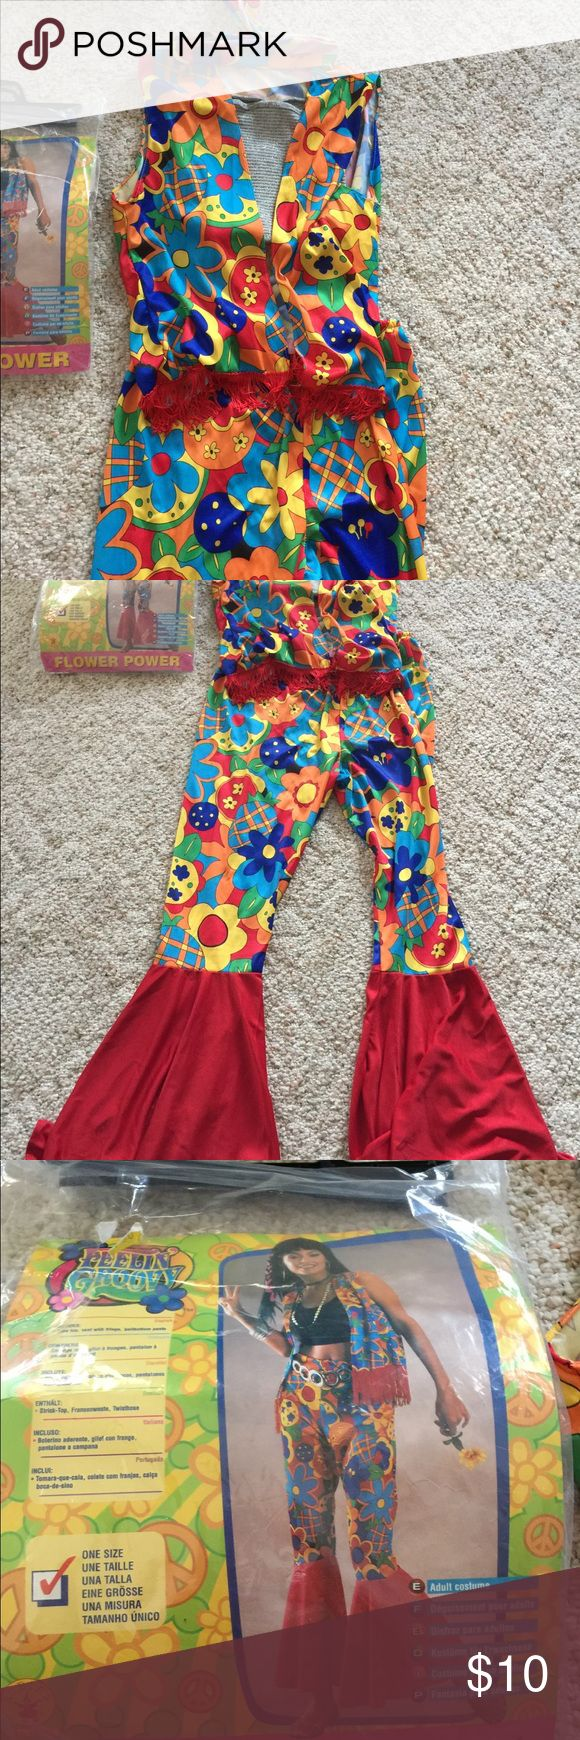 Feelin Groovy Flower Power Costume Pre Owned Feelin Groovy Flower Power Costume. Comes with Silver Tube Top. Vest, Pants and Headband. Other